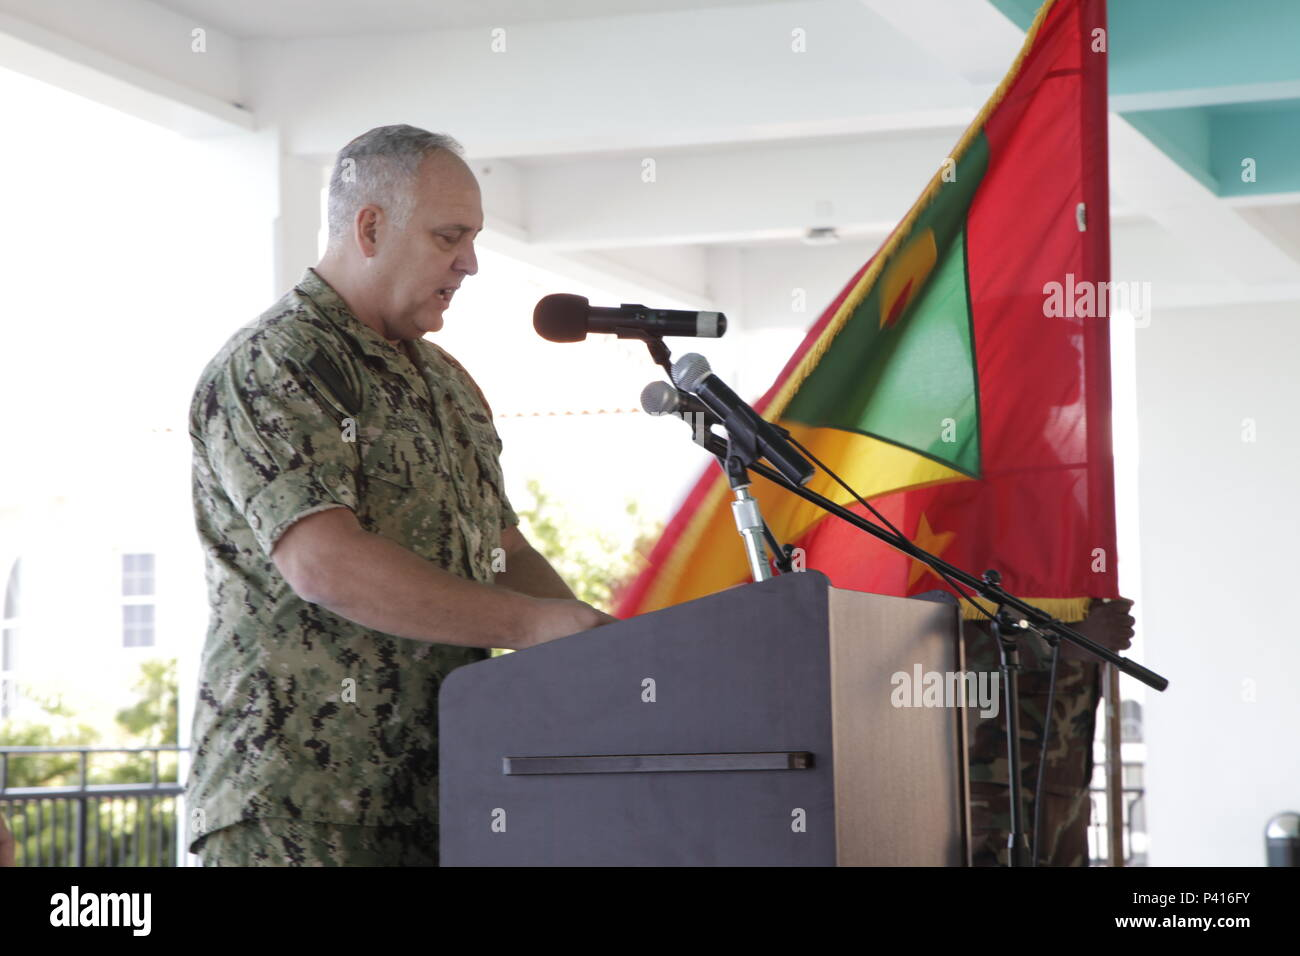 Navy Rear Adm. Scott Jerabek, theatre engagement director for U.S. Southern Command, speaks during the opening ceremony of Tradewinds 2016 in St. George's, Grenada, Jun 5, 2016.  Tradewinds 2016 is a joint combined exercise conducted in conjunction with partner nations to enhance the collective abilities of defense forces and constabularies to counter transnational organized crime and to conduct humanitarian/disaster relief operations. Royal Bahamas Defense Force photo by Marine Seaman Michael Turner Stock Photo